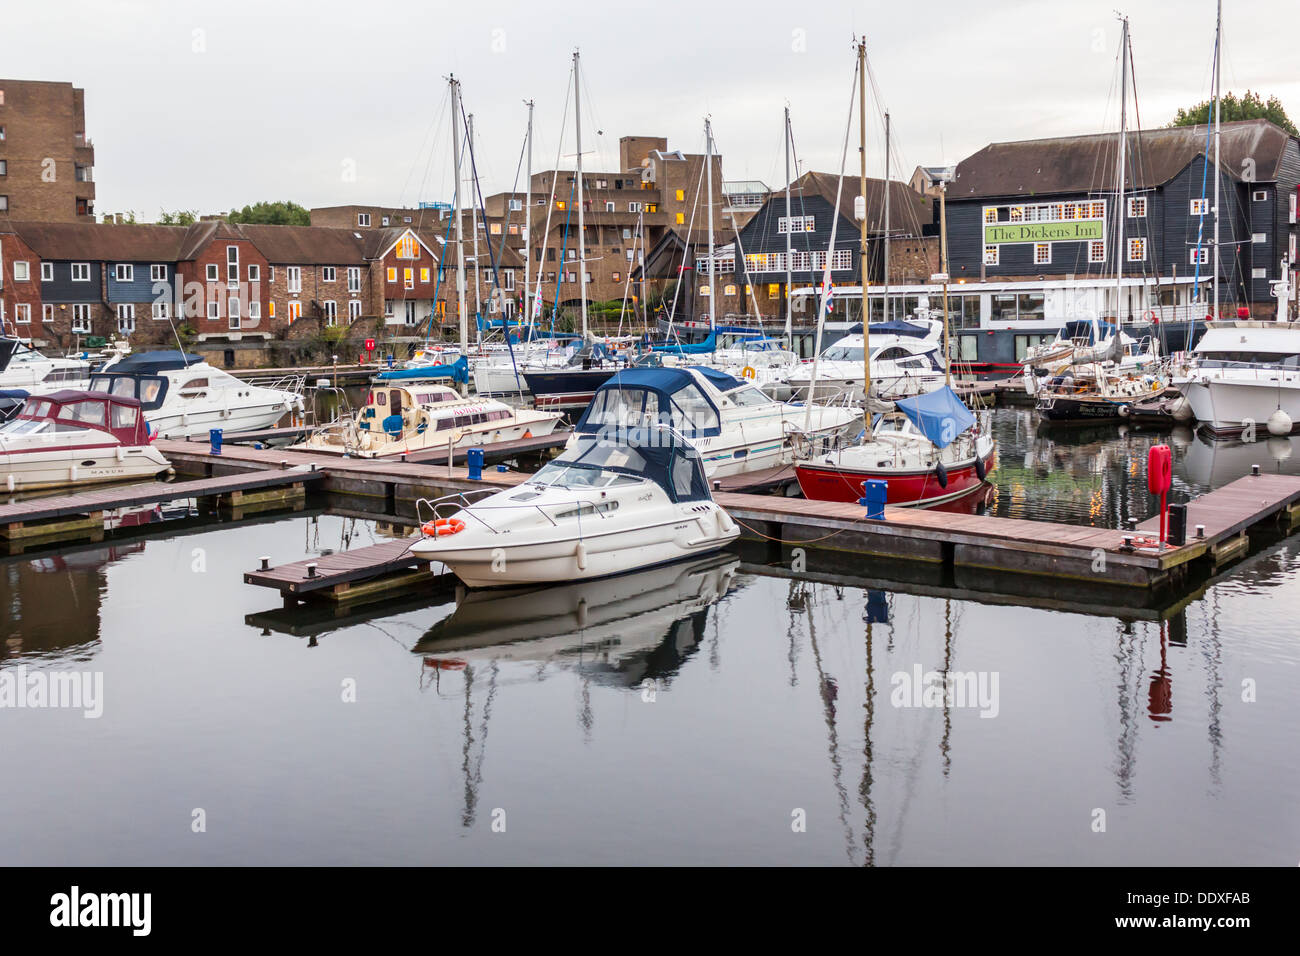 St Katharines Docks Yacht Marina with Sail and Motor Boats and the Dickens Inn - Stock Image